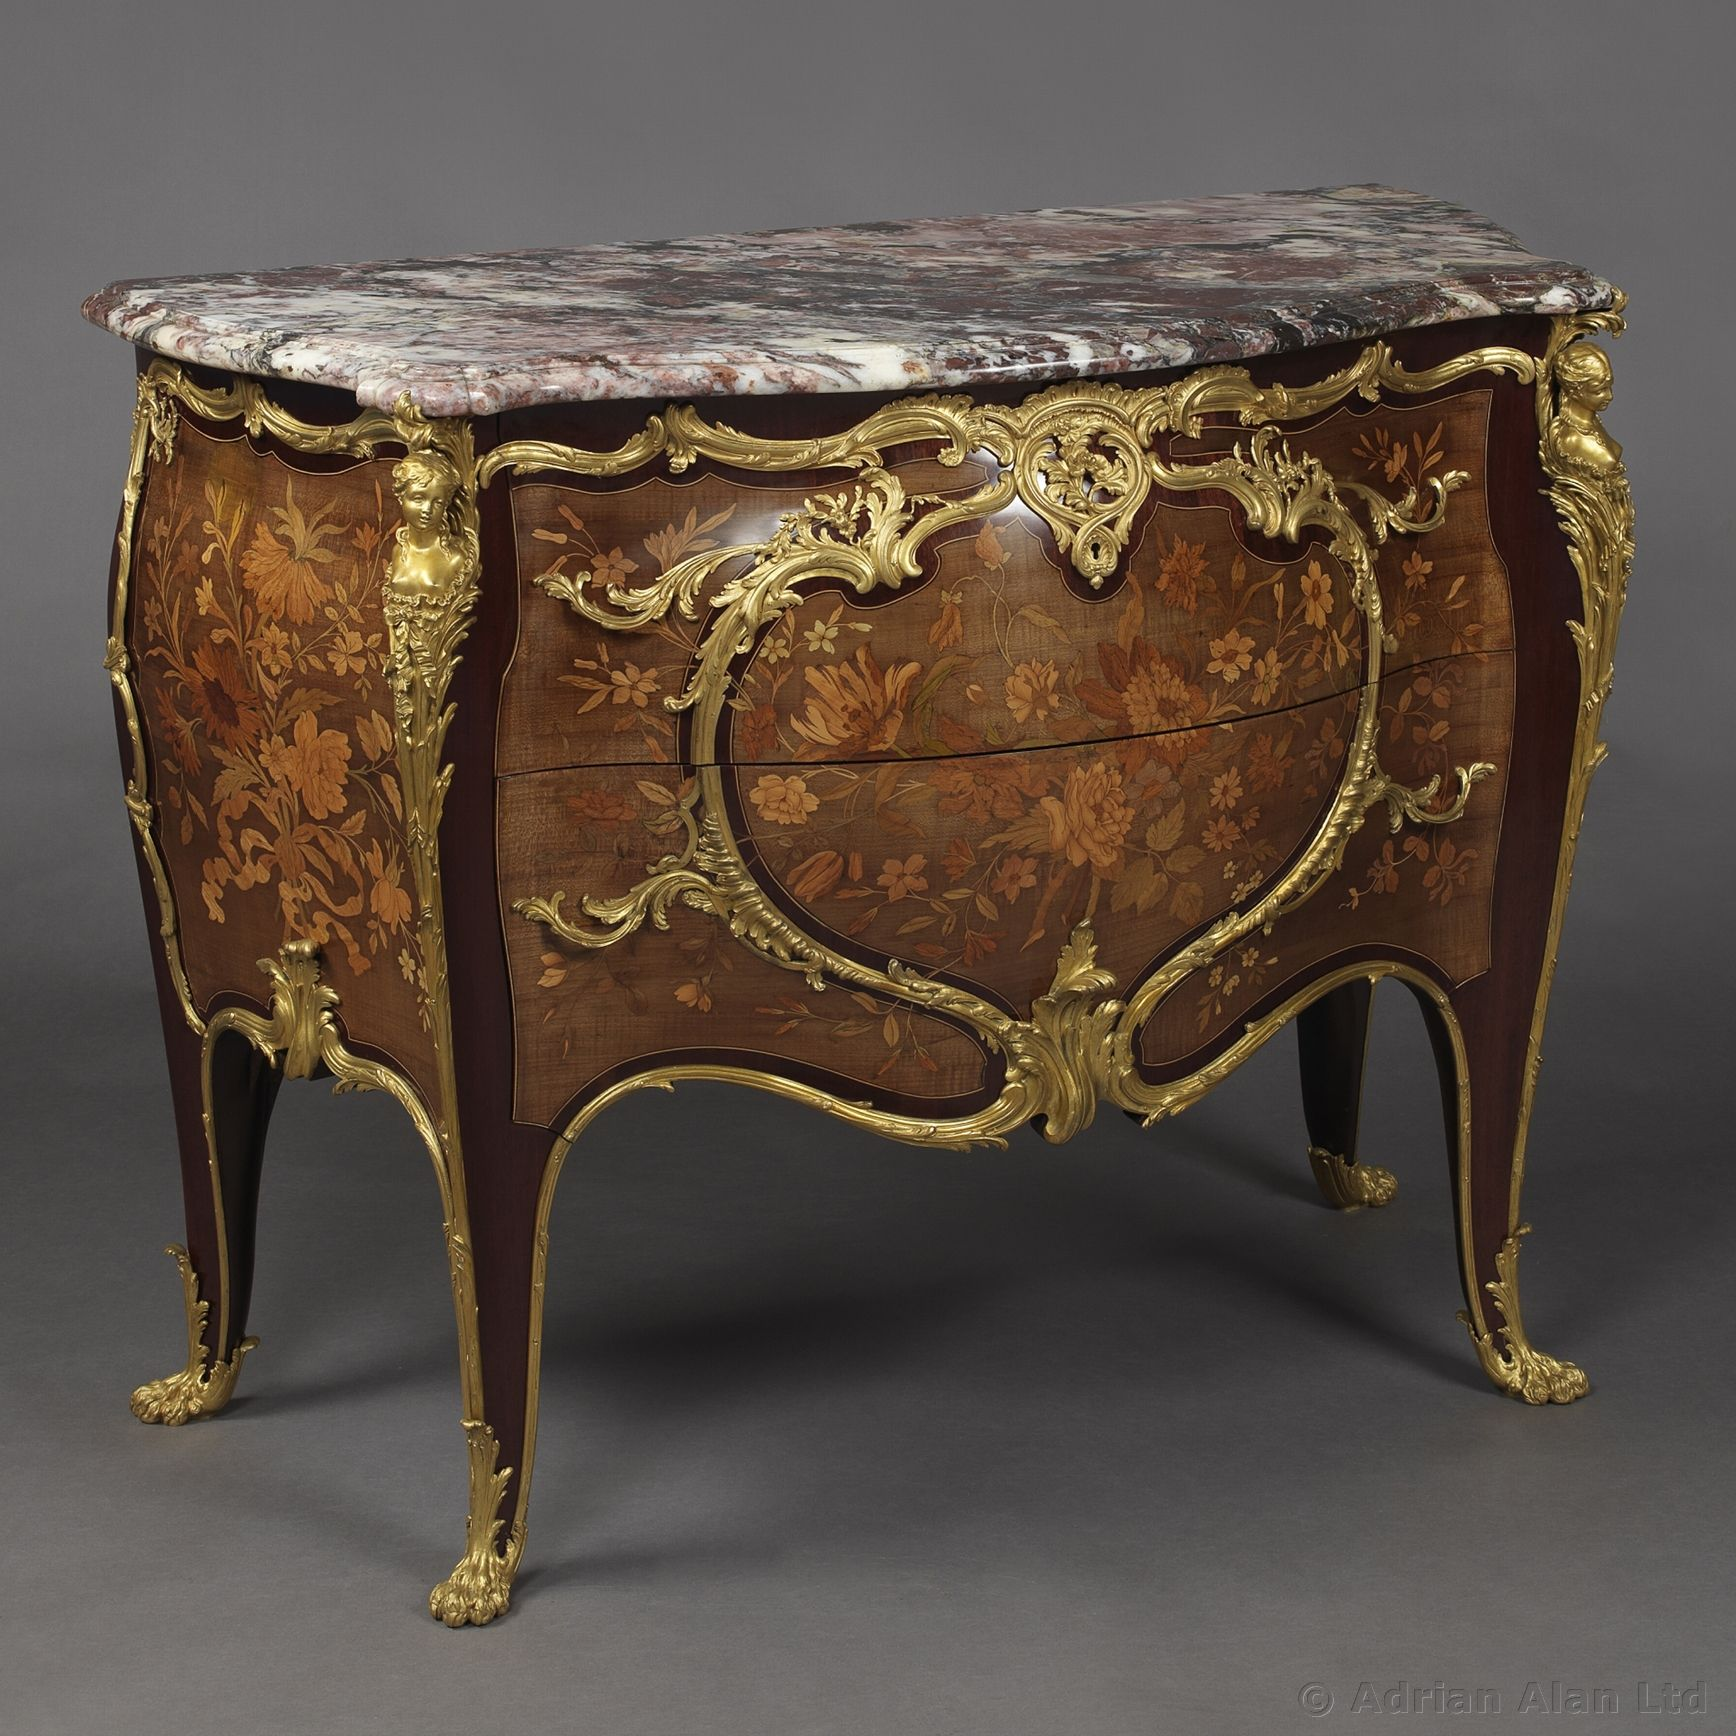 A Fine Louis XV Style Gilt-Bronze Mounted Purpleheart and Marquetry #Commode With A Brèche Violette Marble Top, By Joseph-Emmanuel #Zwiener - #adrianalan #antique